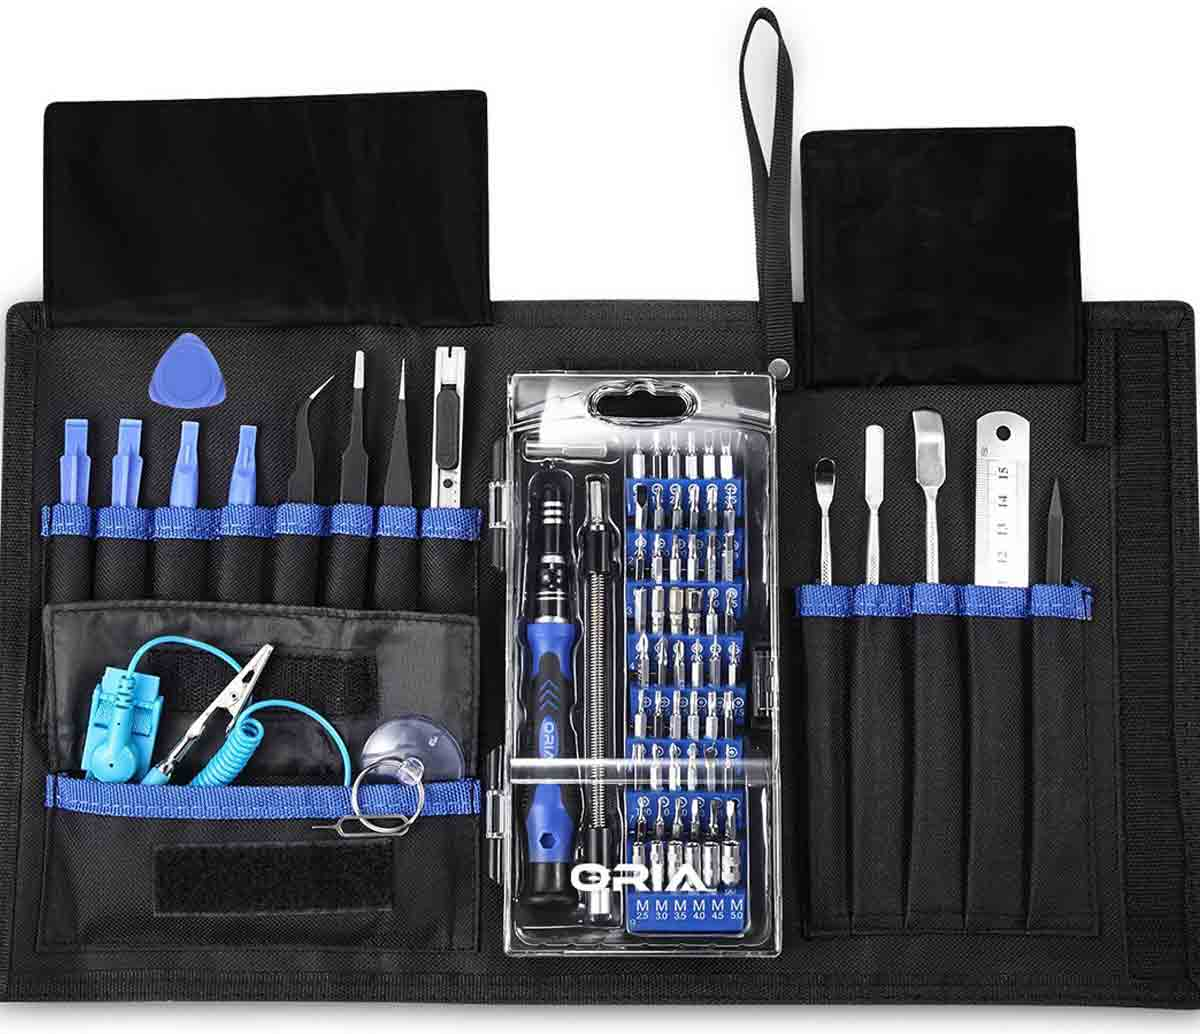 Silver Color : Silver DUANDETAO JF-6035 32 in 1 Professional Multi-Functional Screwdriver Set with Bag